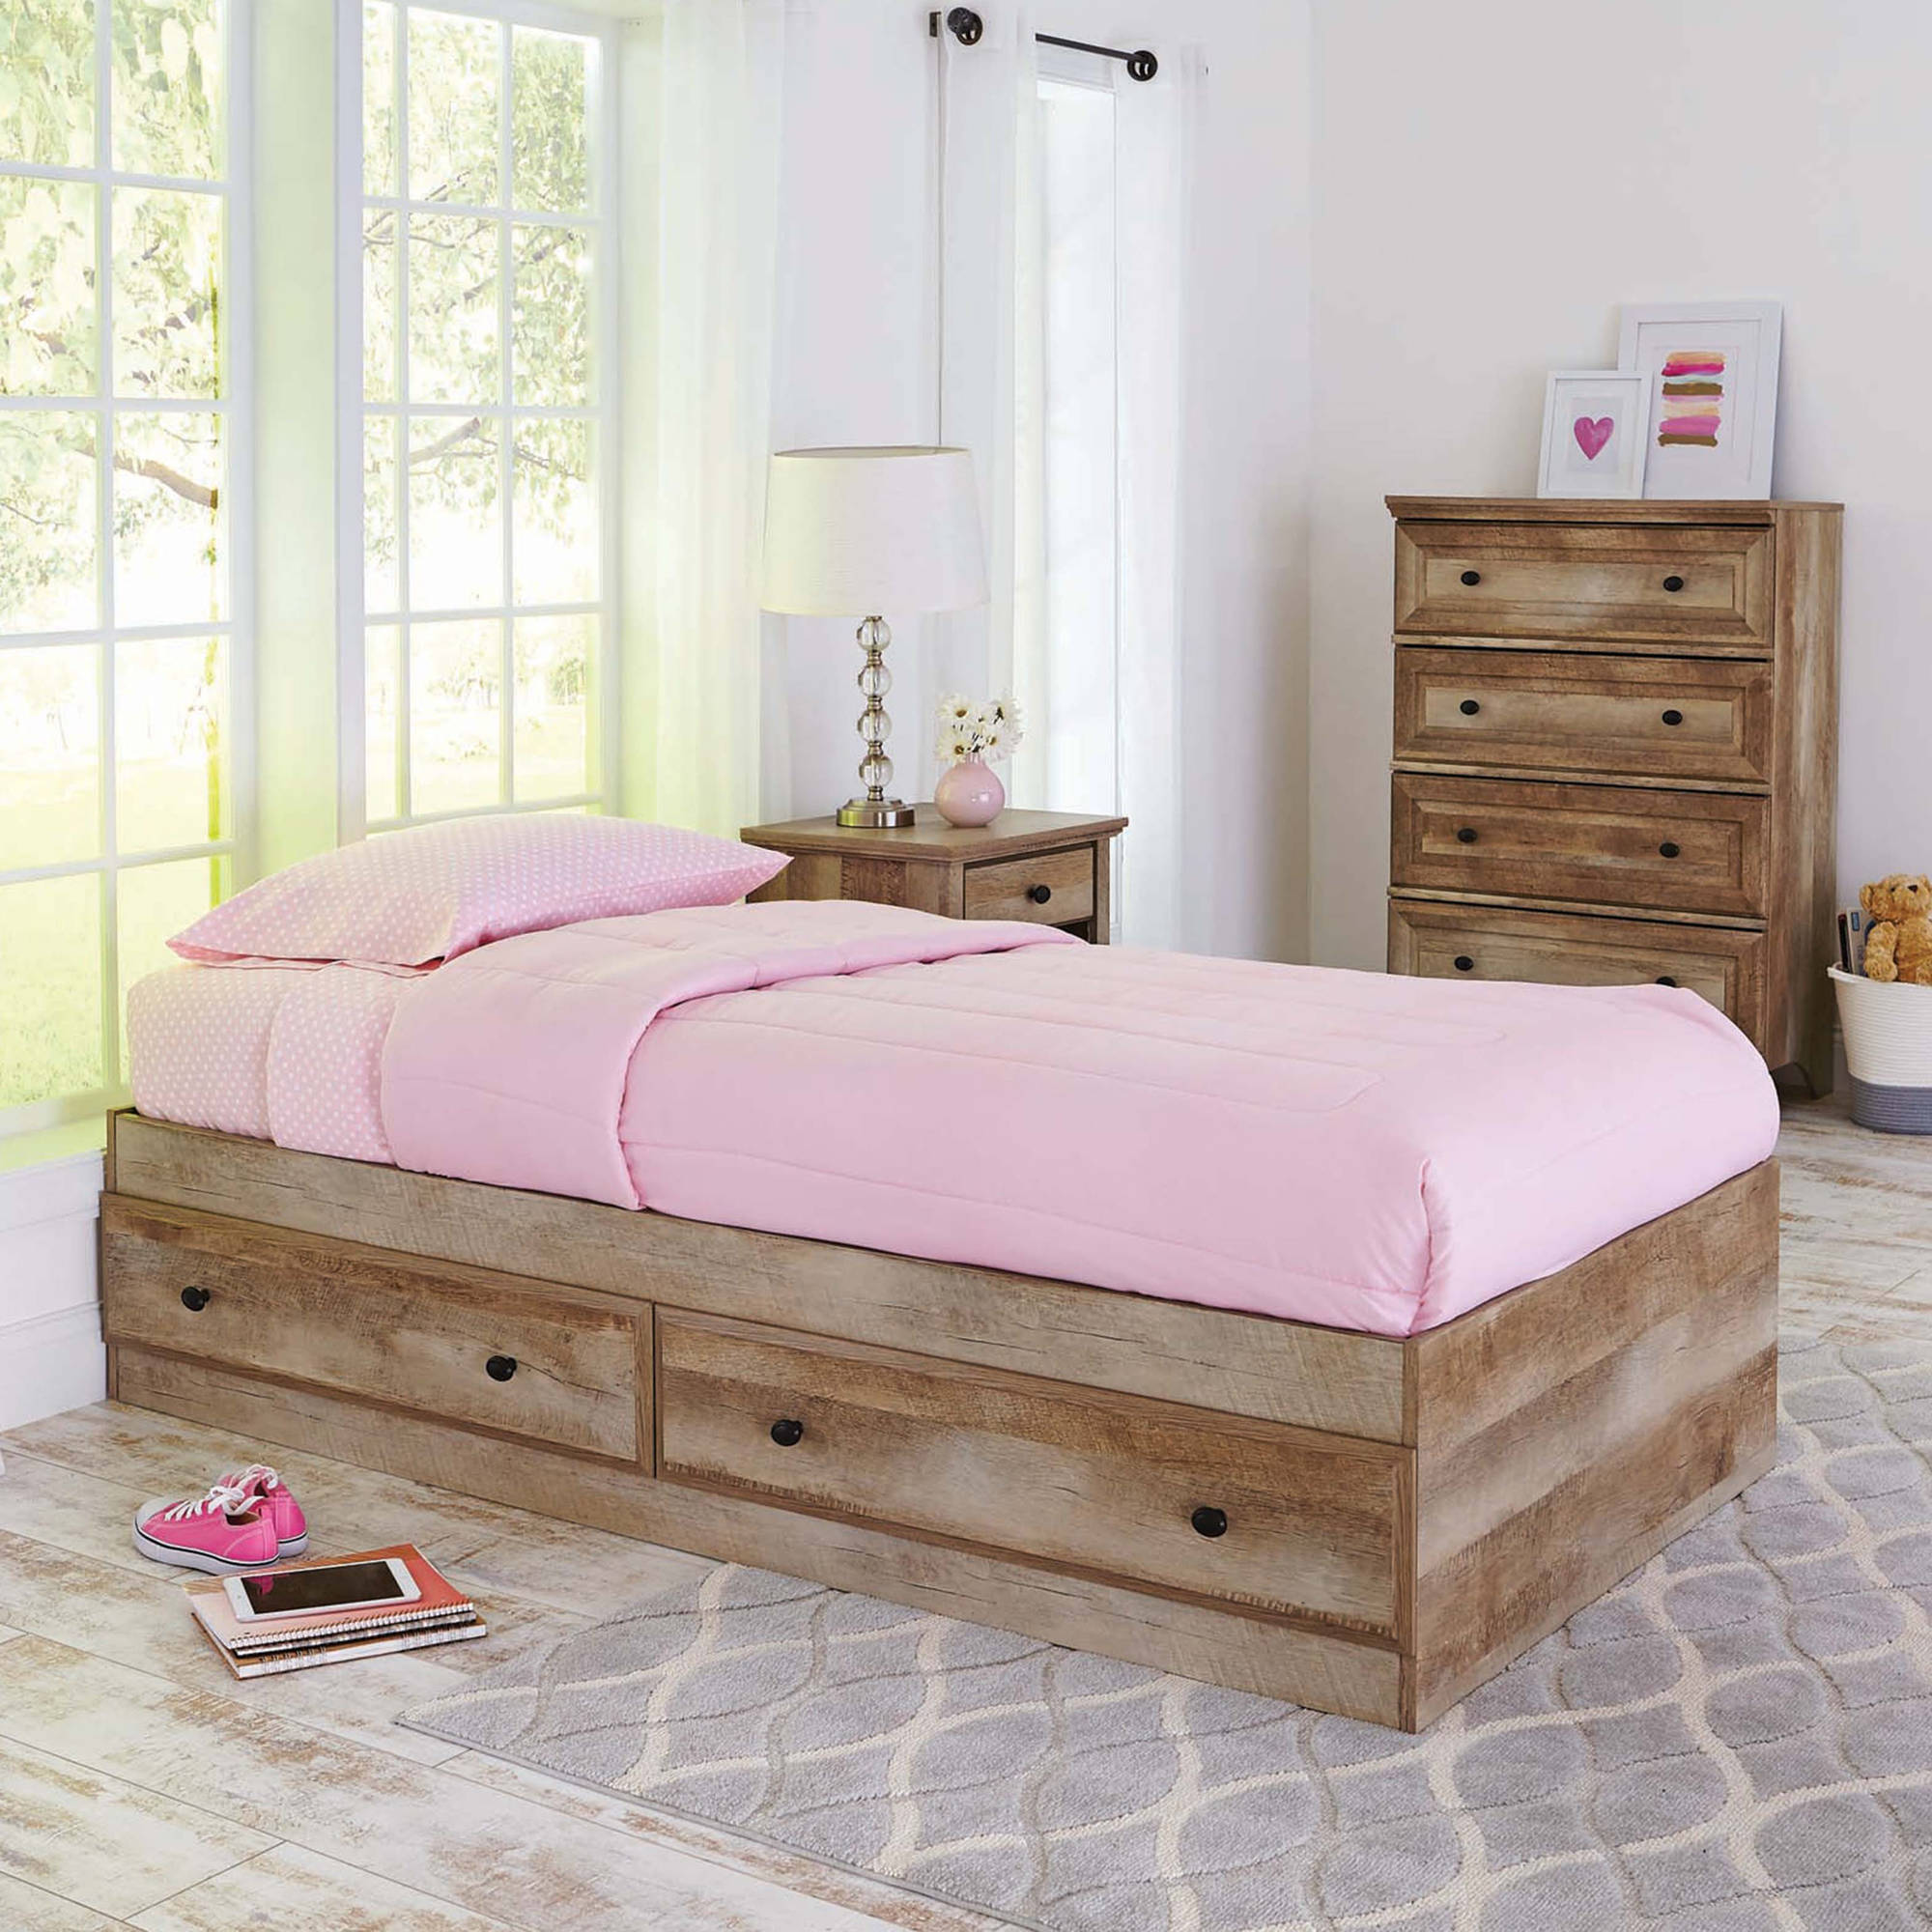 Better Homes and Gardens Crossmill Mates Twin Bed with Storage Weathered Finish & Better Homes and Gardens Crossmill Mates Twin Bed with Storage ...